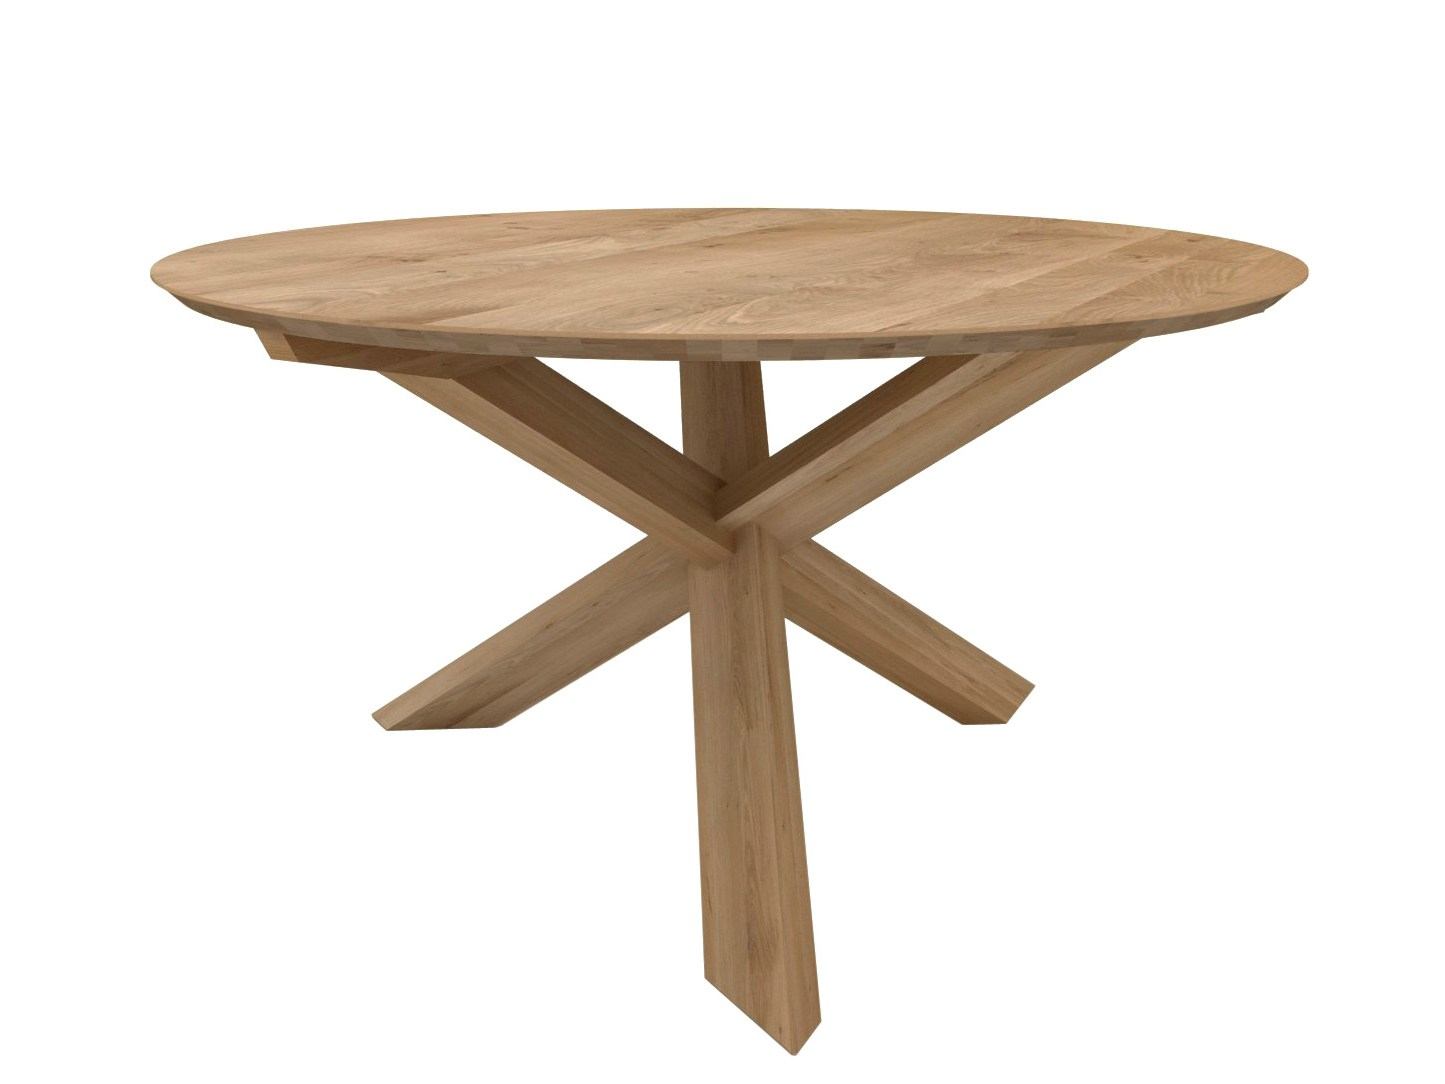 Oak circle table by ethnicraft design alain van havre for Table a manger ronde en bois